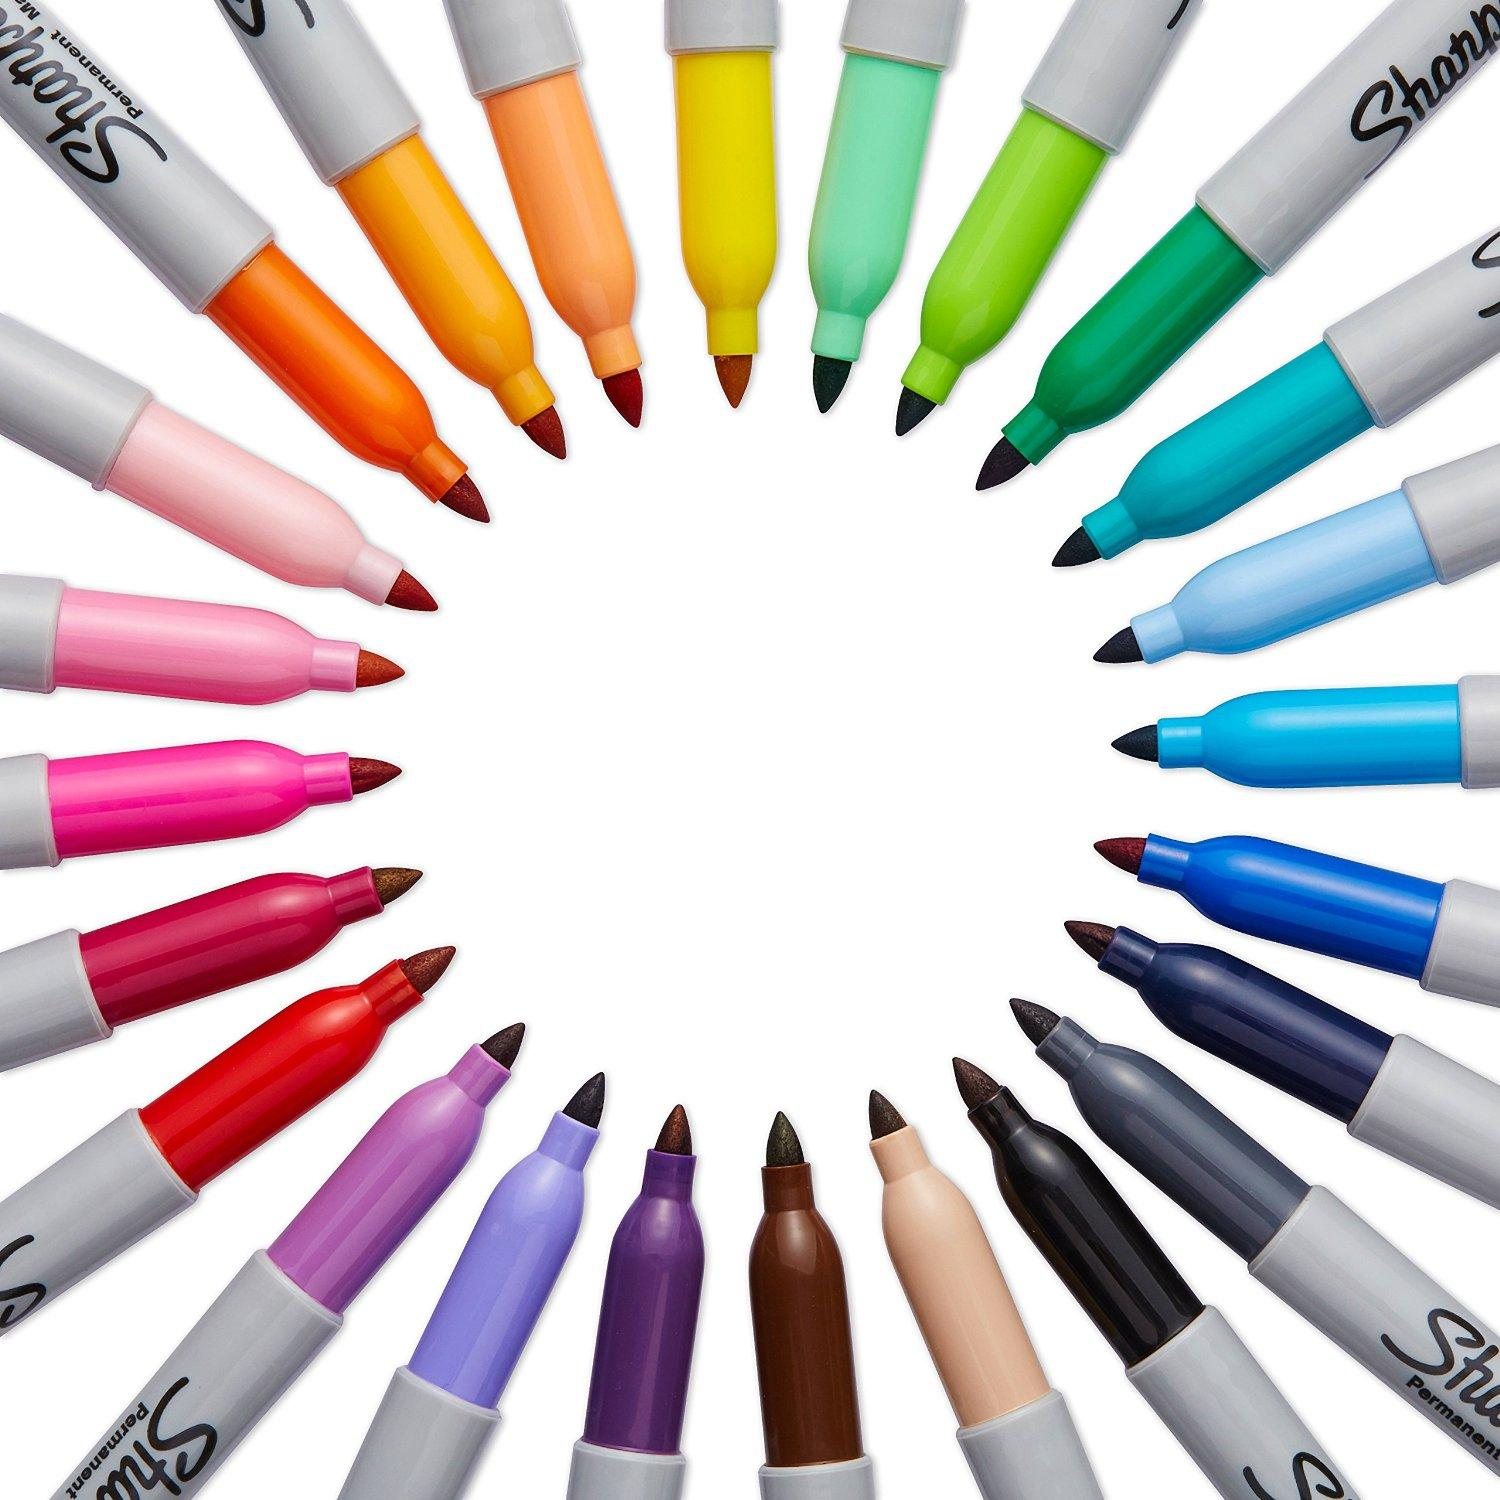 Sharpie Permanent Marker, Assorted Colors,Pack of 20 @ Amazon